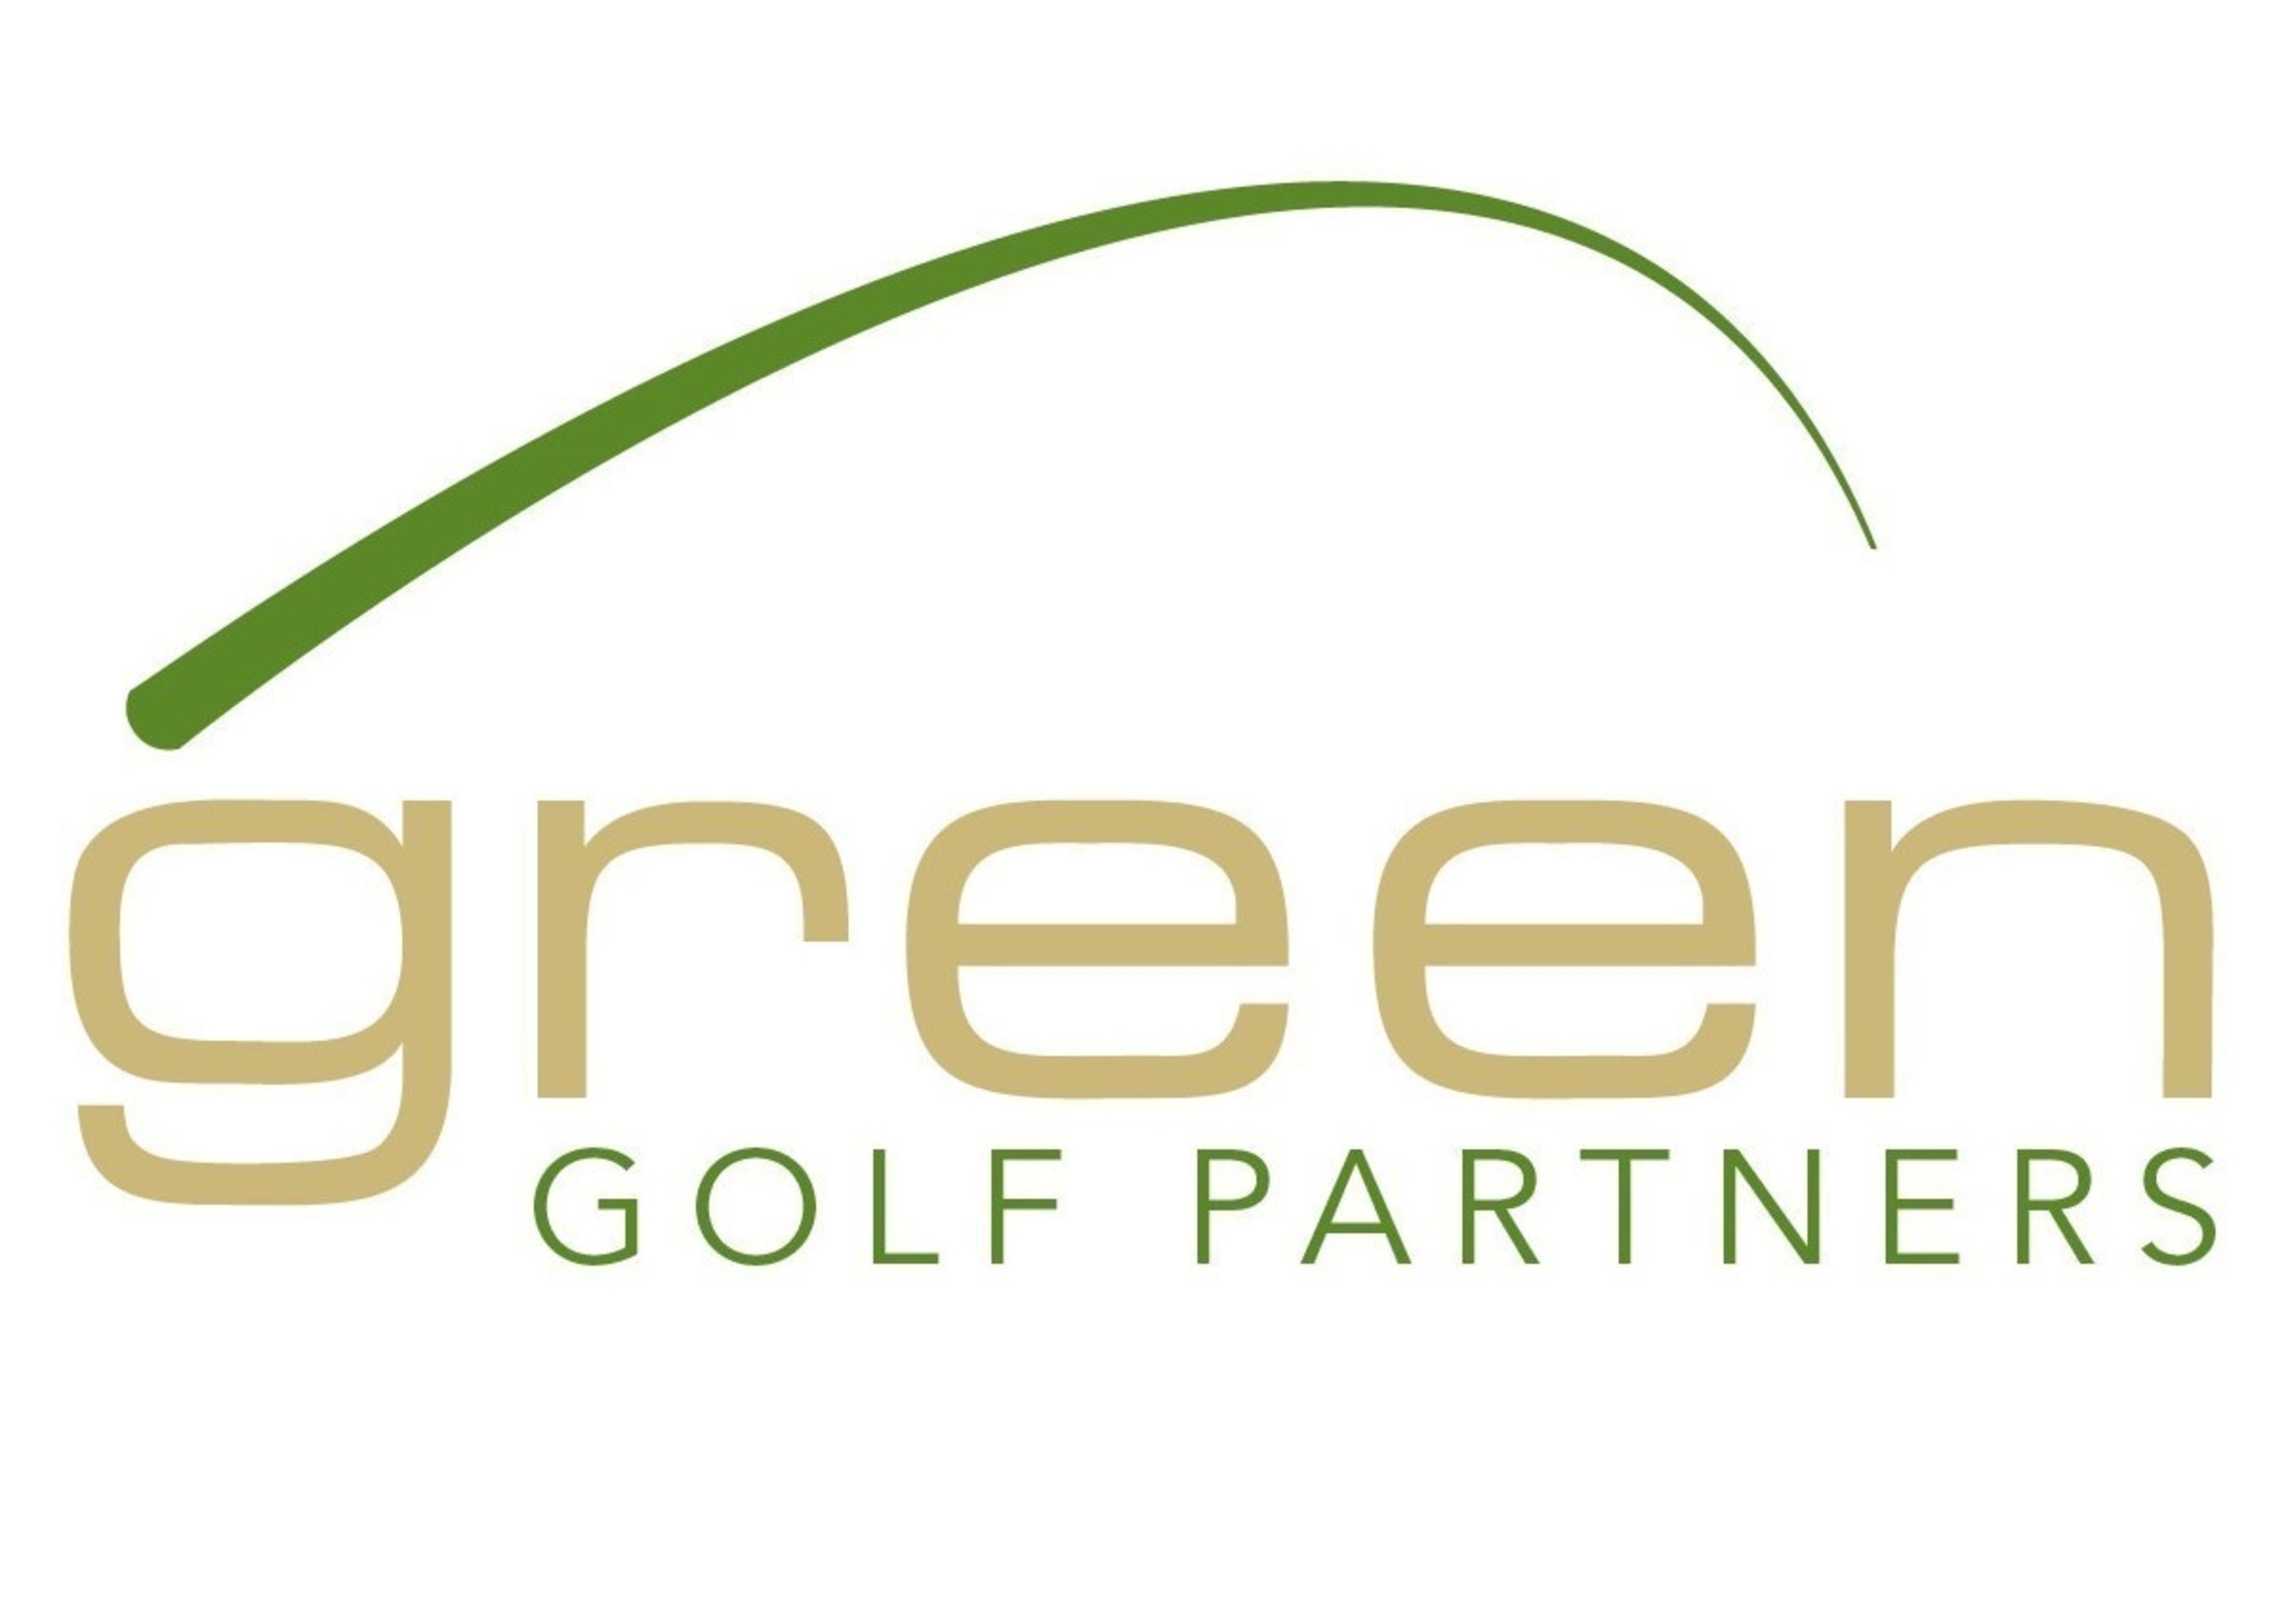 Green Golf Partners headquarters is located in Danville, Indiana.